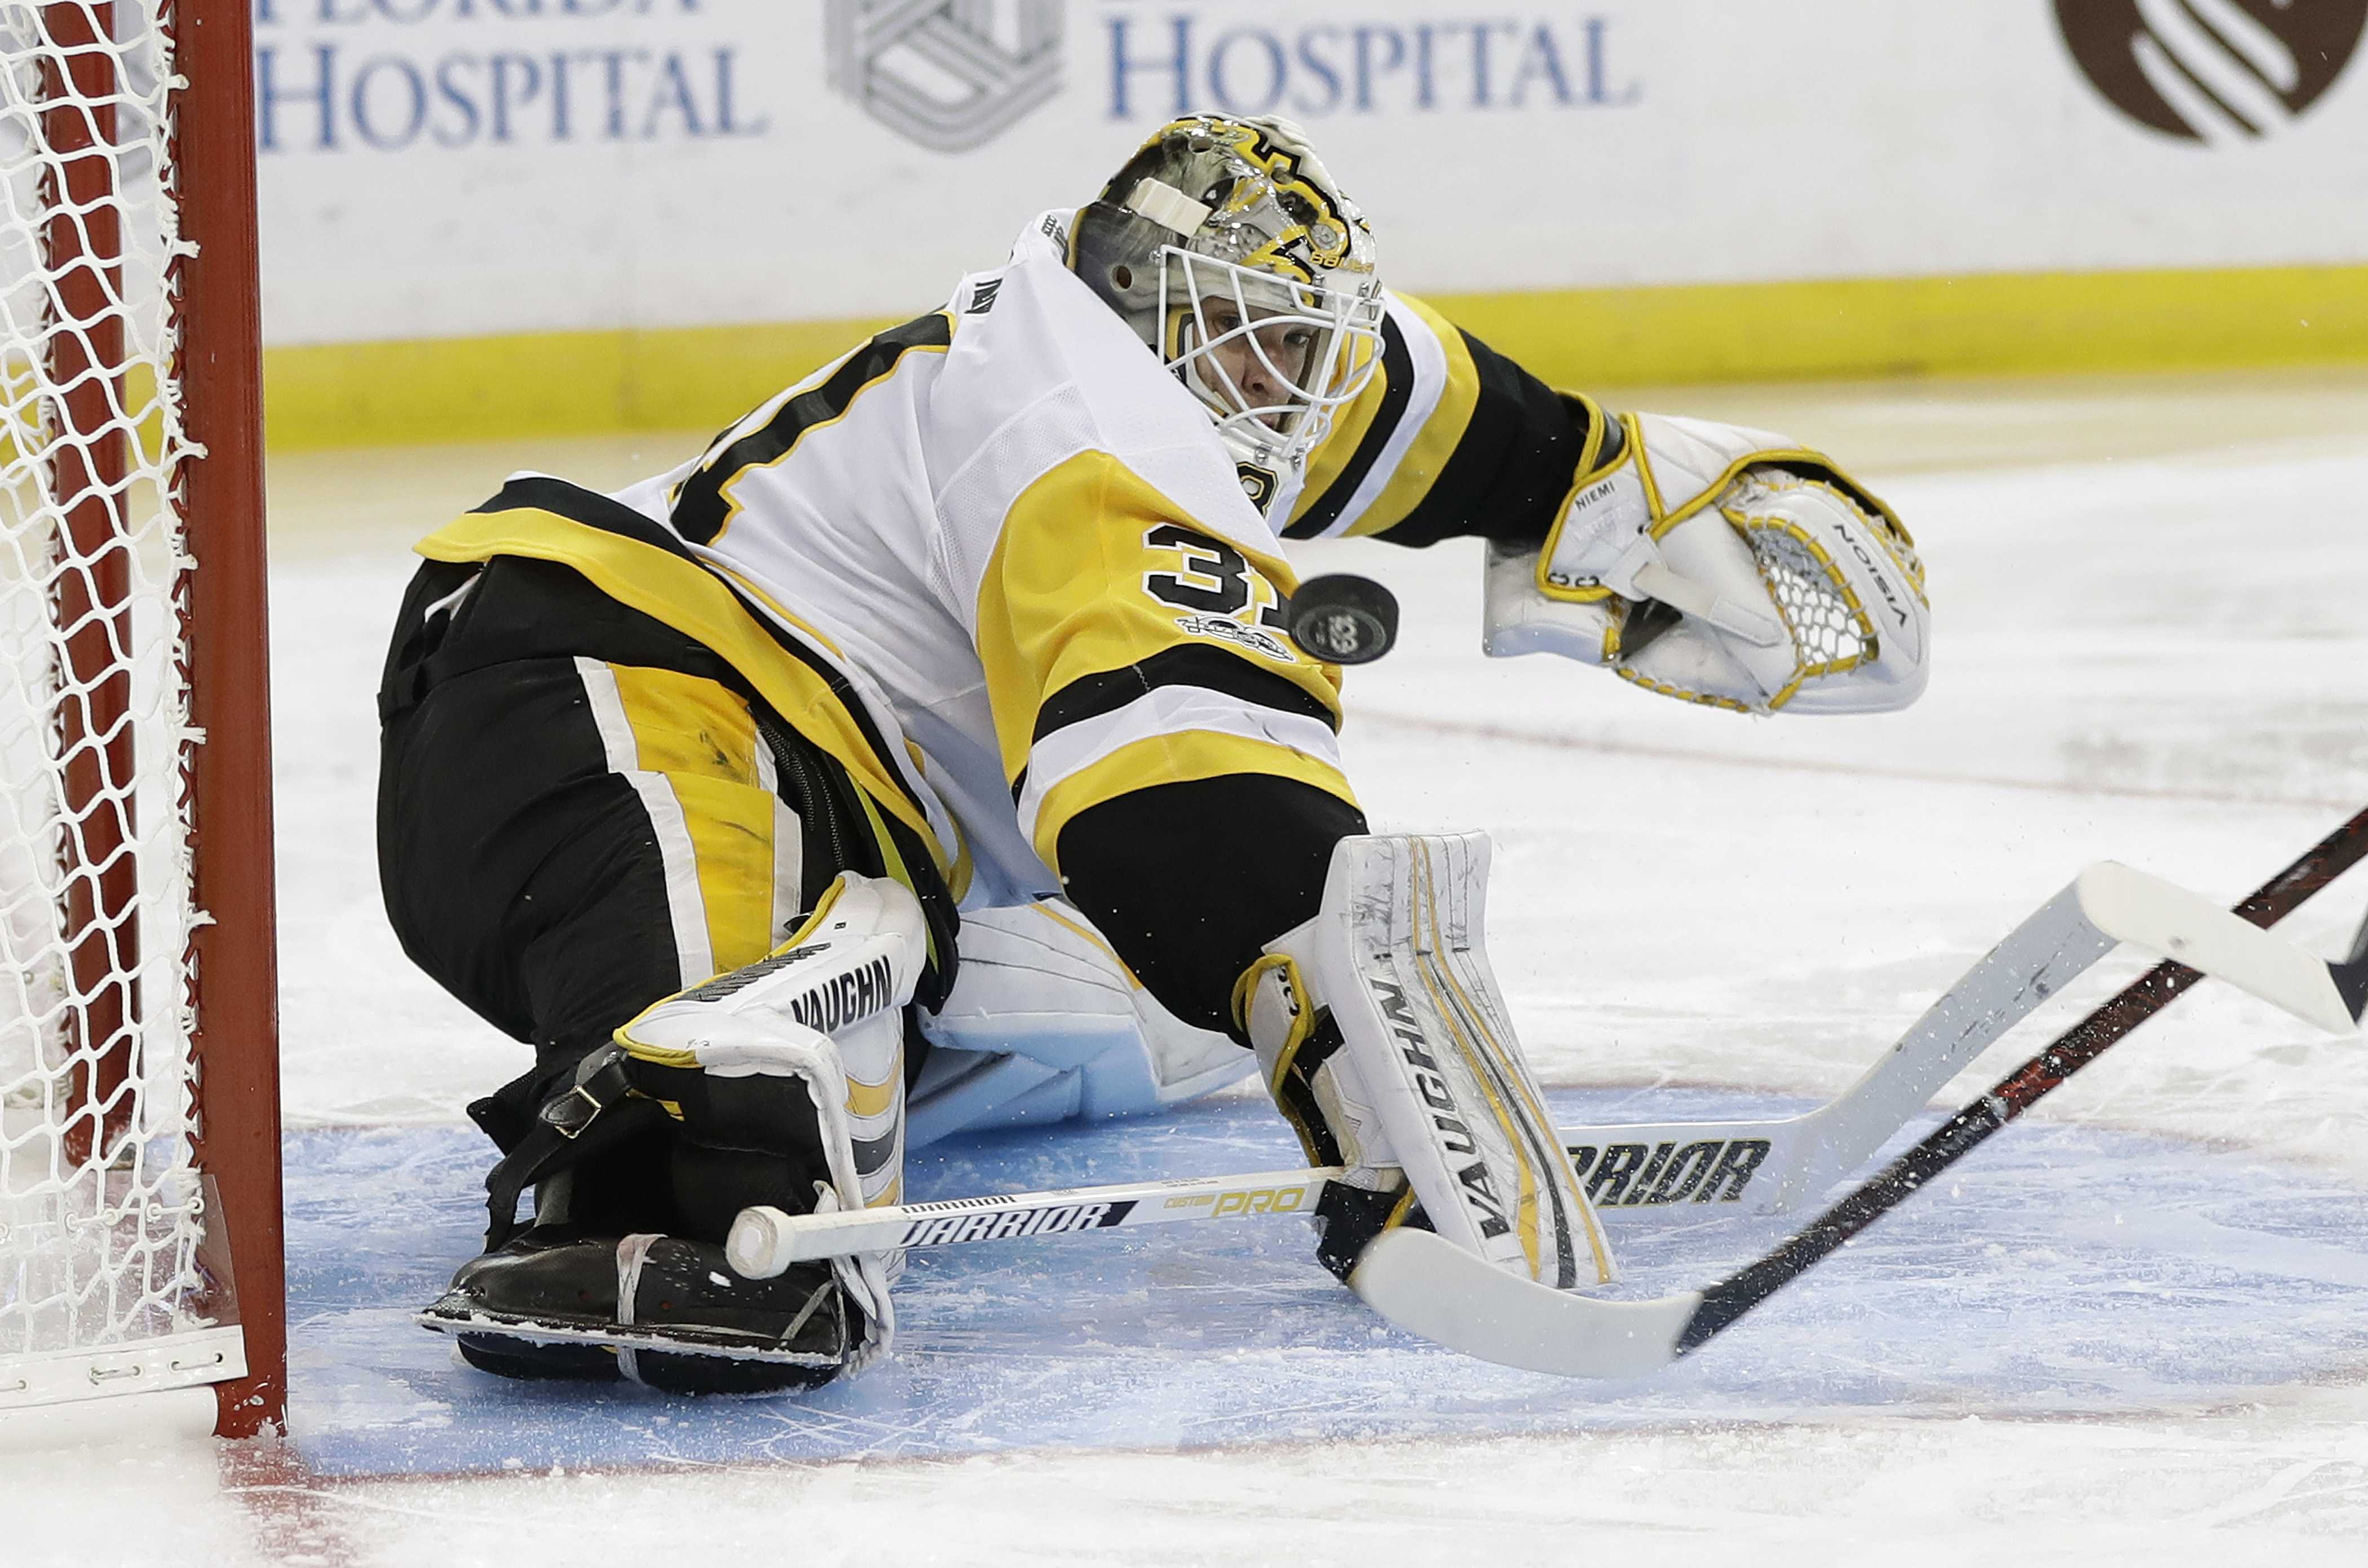 Leafs' Fehr, Pens' Niemi on waivers Monday